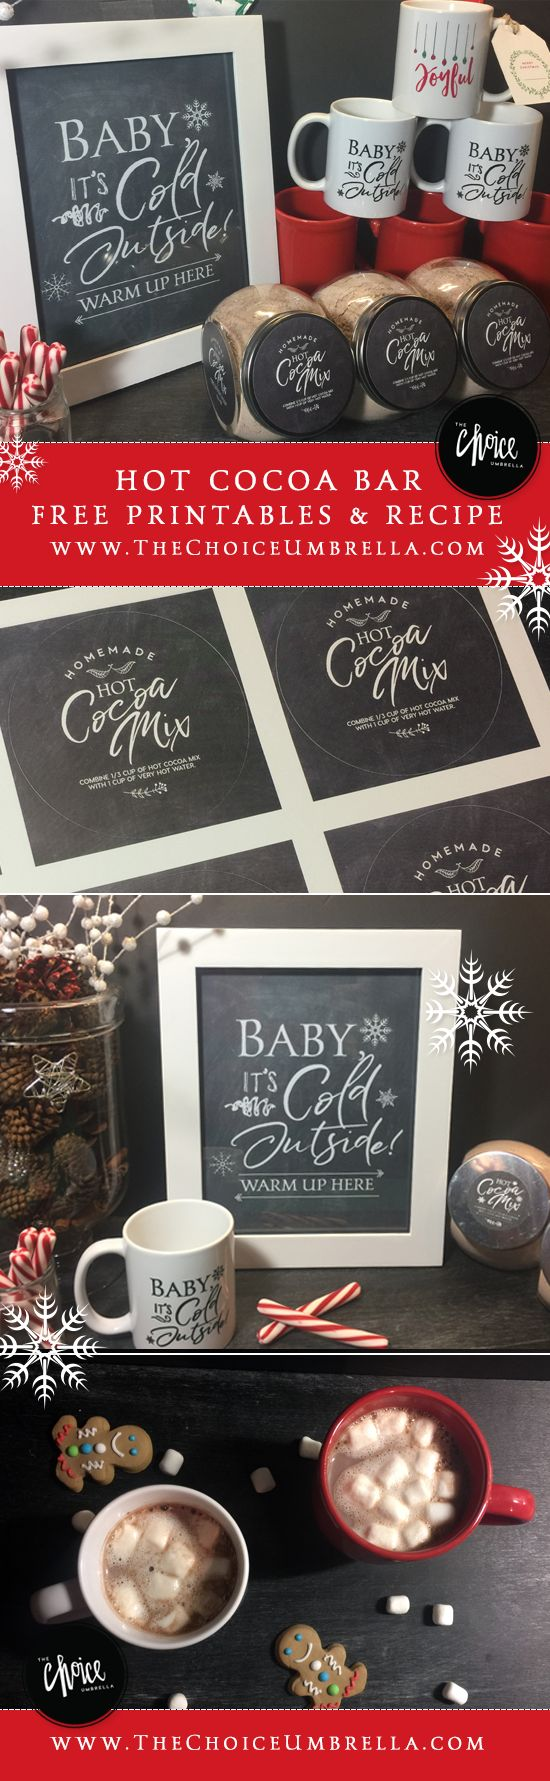 Free download Friday – Hot Beverage Bar with Printables!  Baby it's Cold Outside: 8x10 print, 2 inch circular labels and 3 inch circular labels - create your own hot beverage bar!